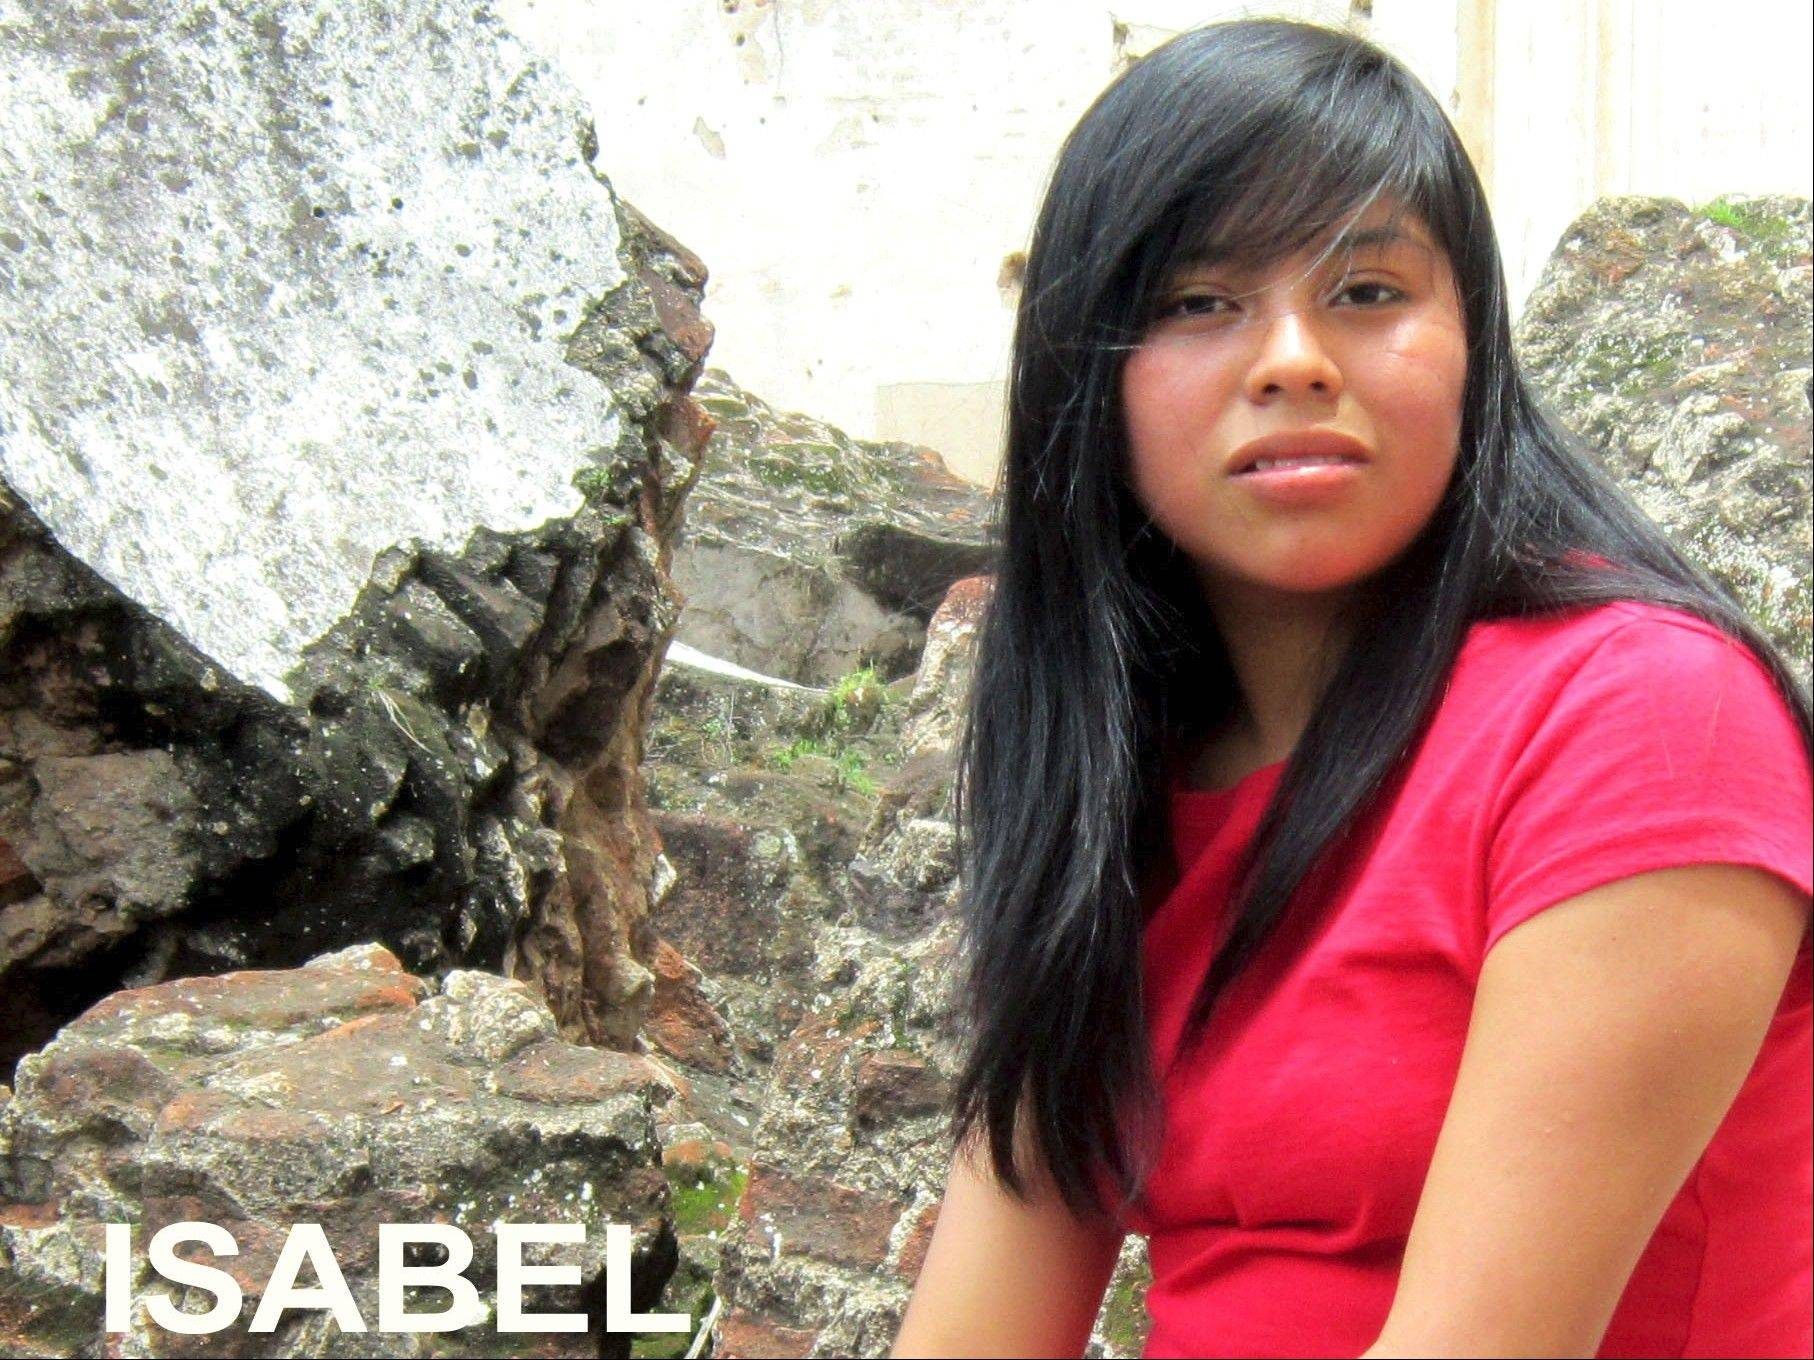 Isabel is one of the girls the Prims work with in Guatemala.